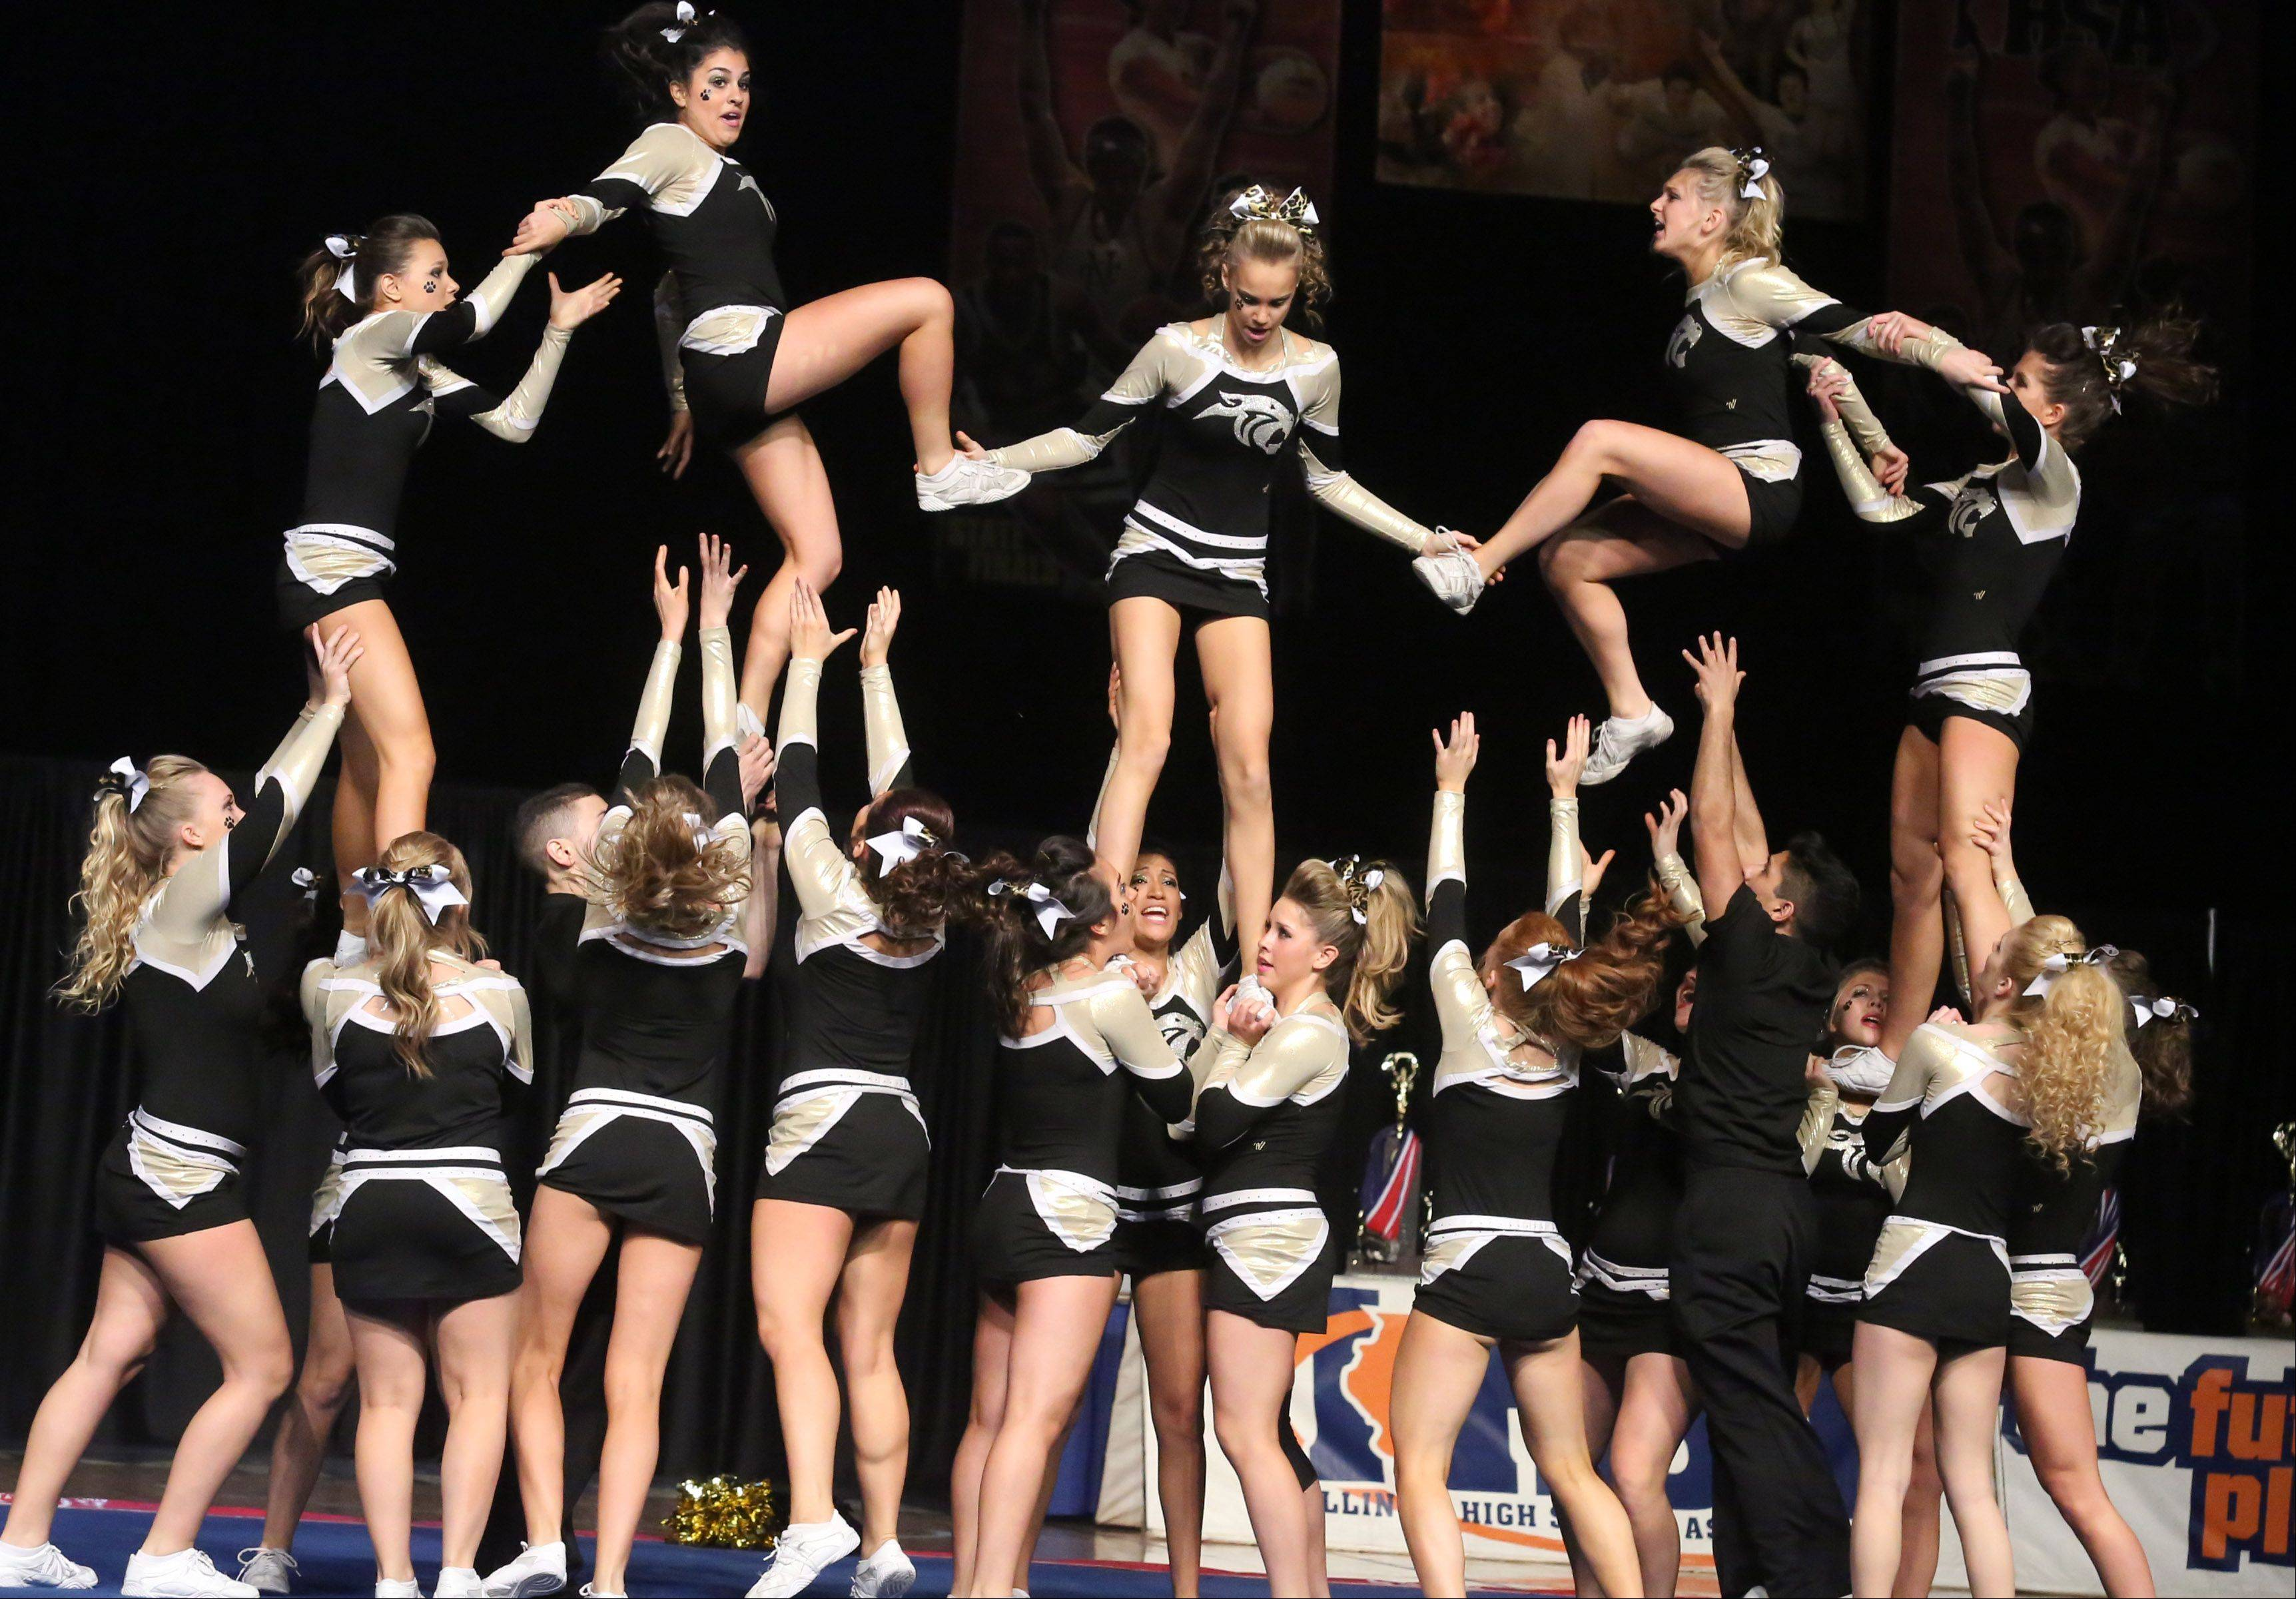 Glenbard North High School's cheer team performs in the coed team category.